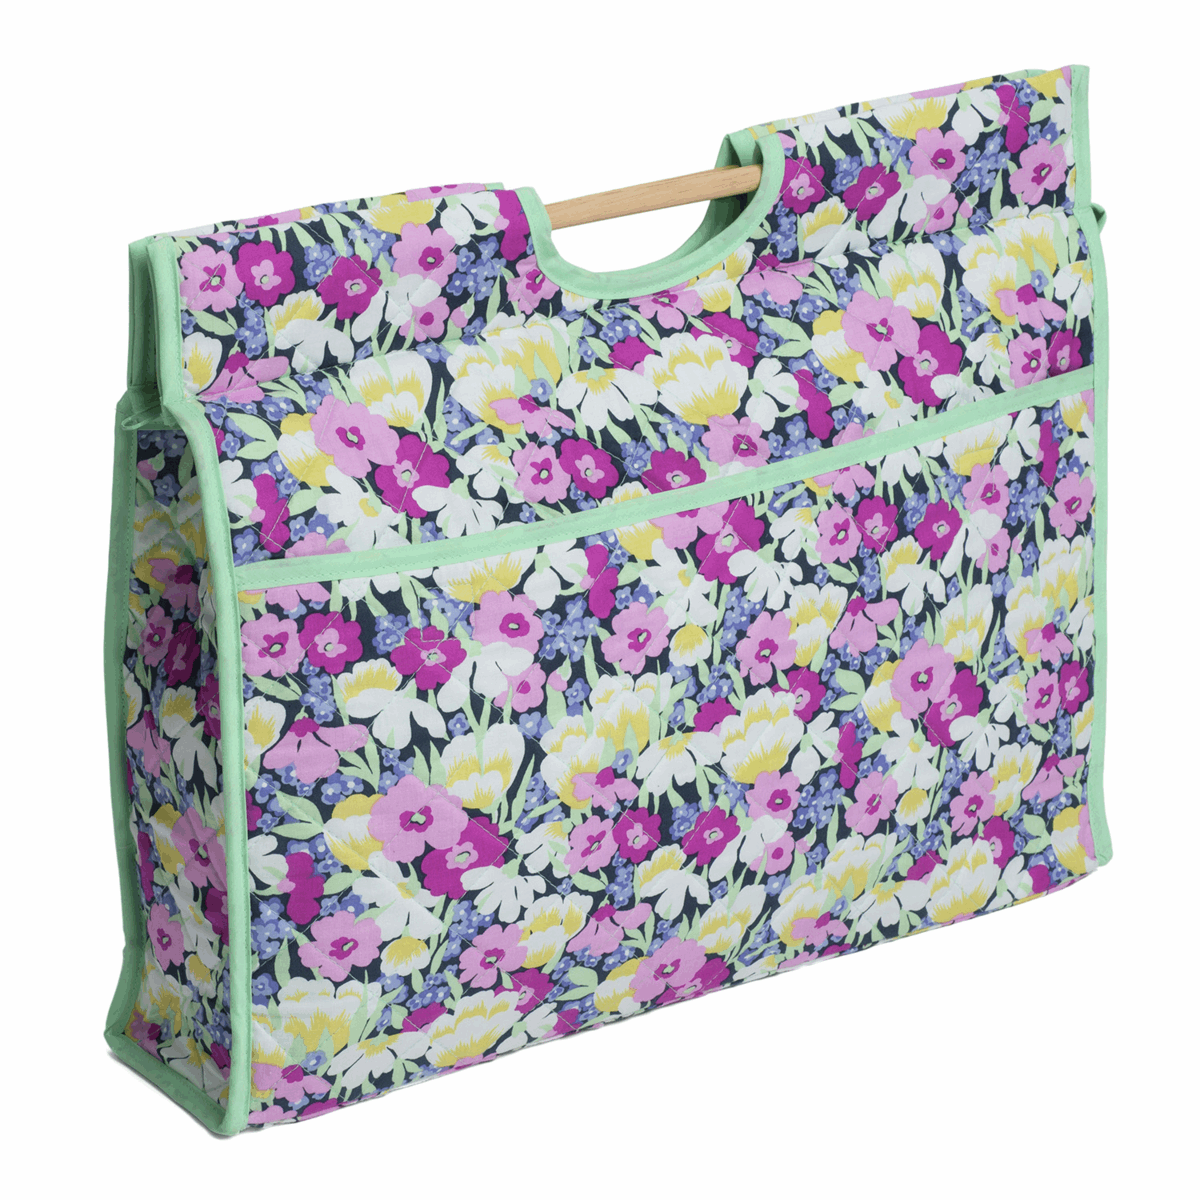 Picture of Craft Bag with Wooden Handles: Wild Blossom